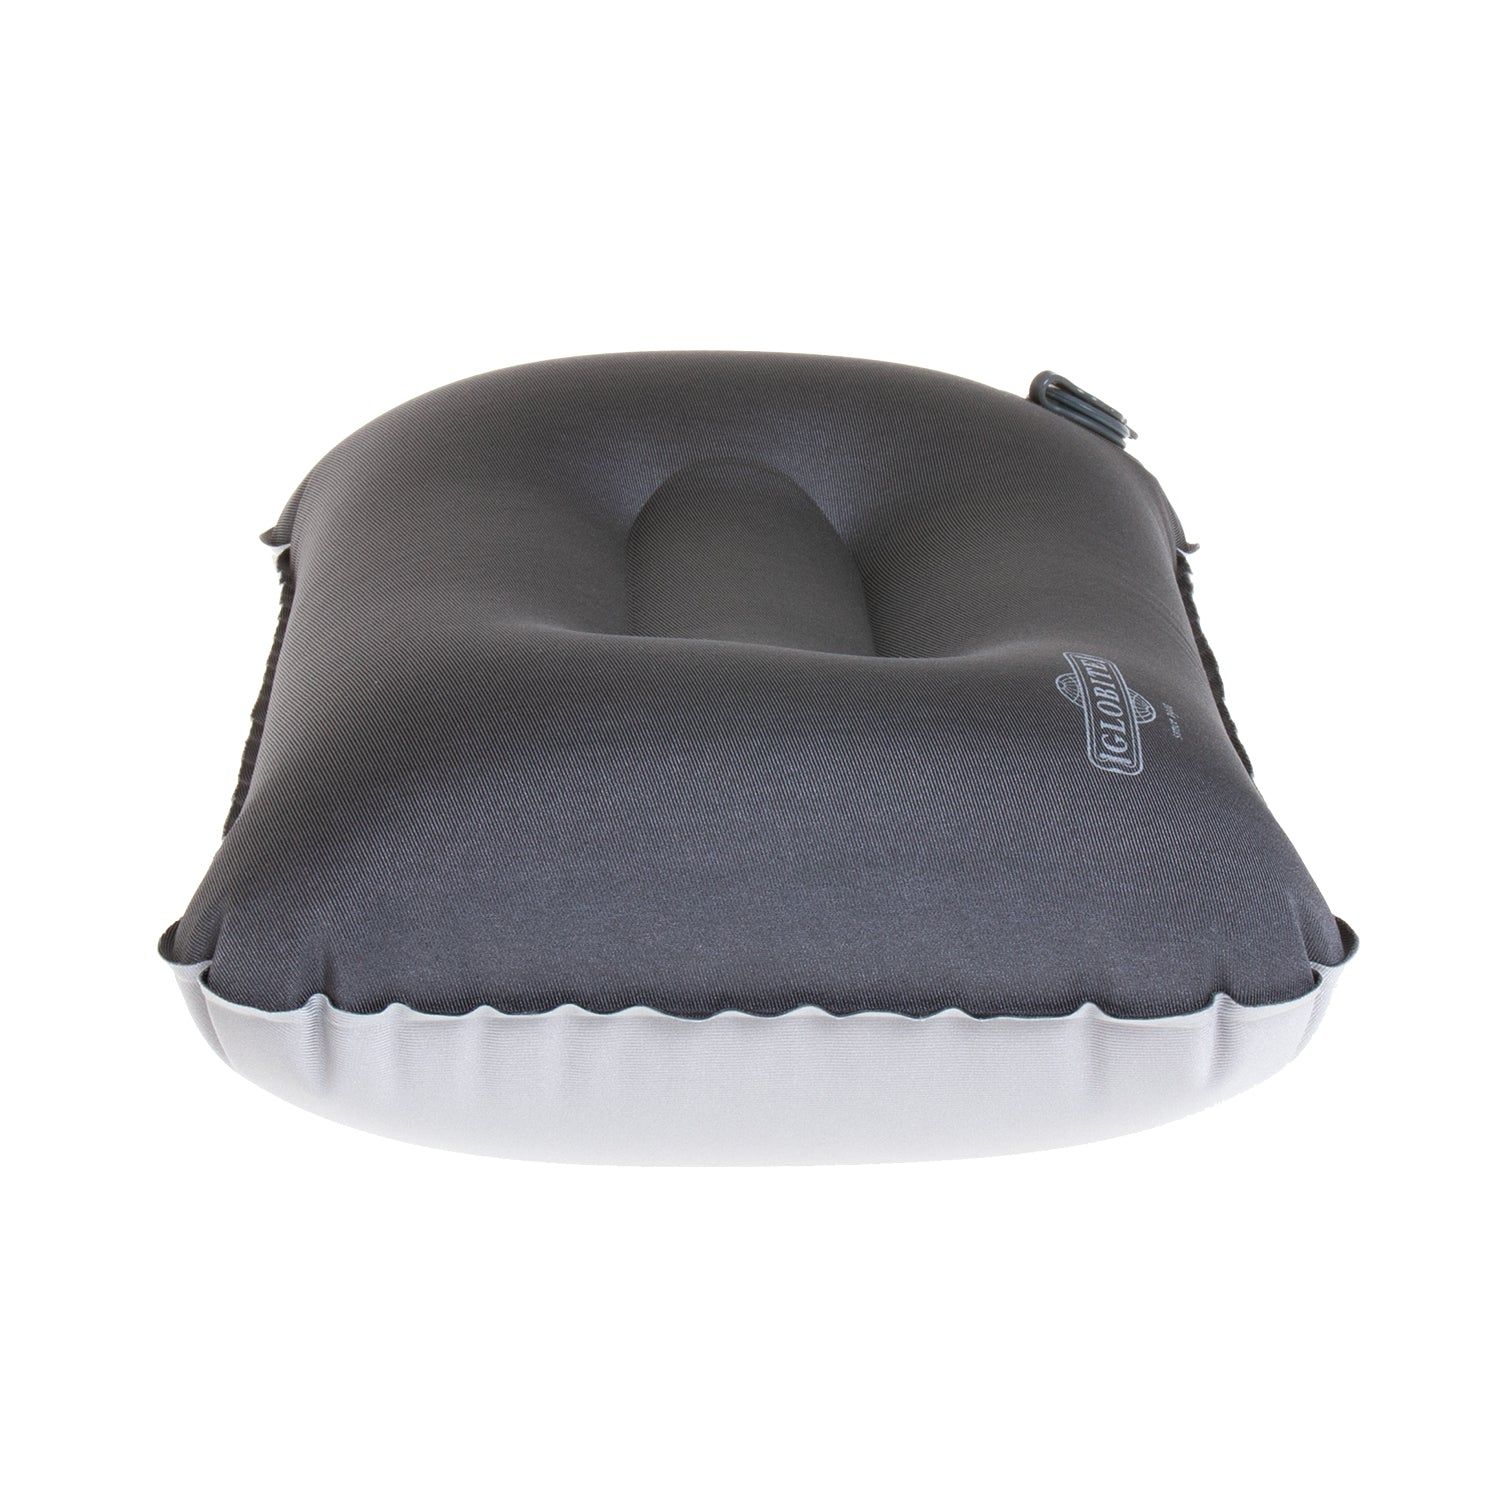 Quick Inflate Cushion - globite